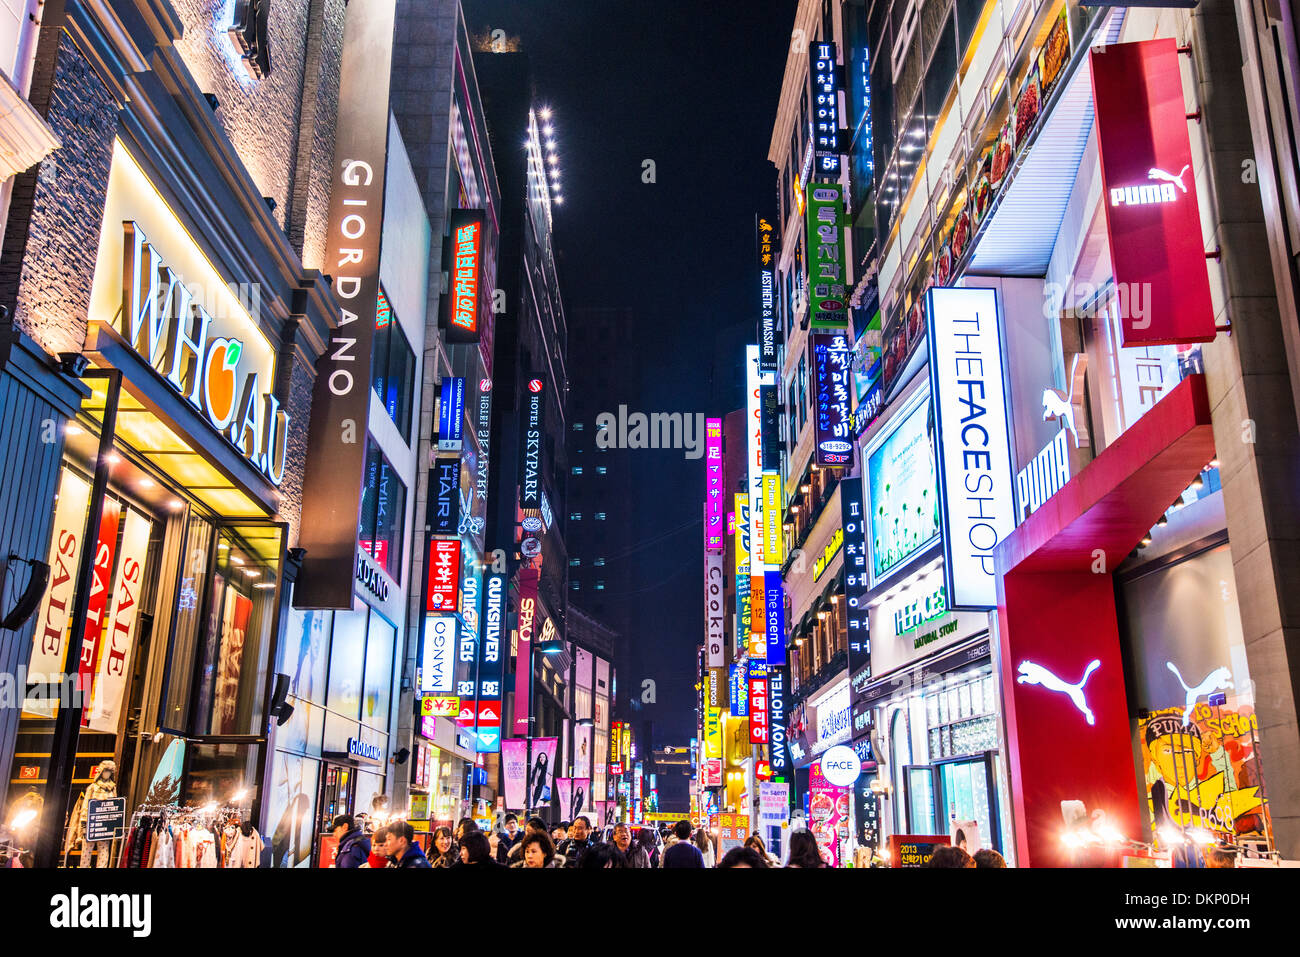 Myeong-dong nightlife district of Seoul, South Korea. - Stock Image